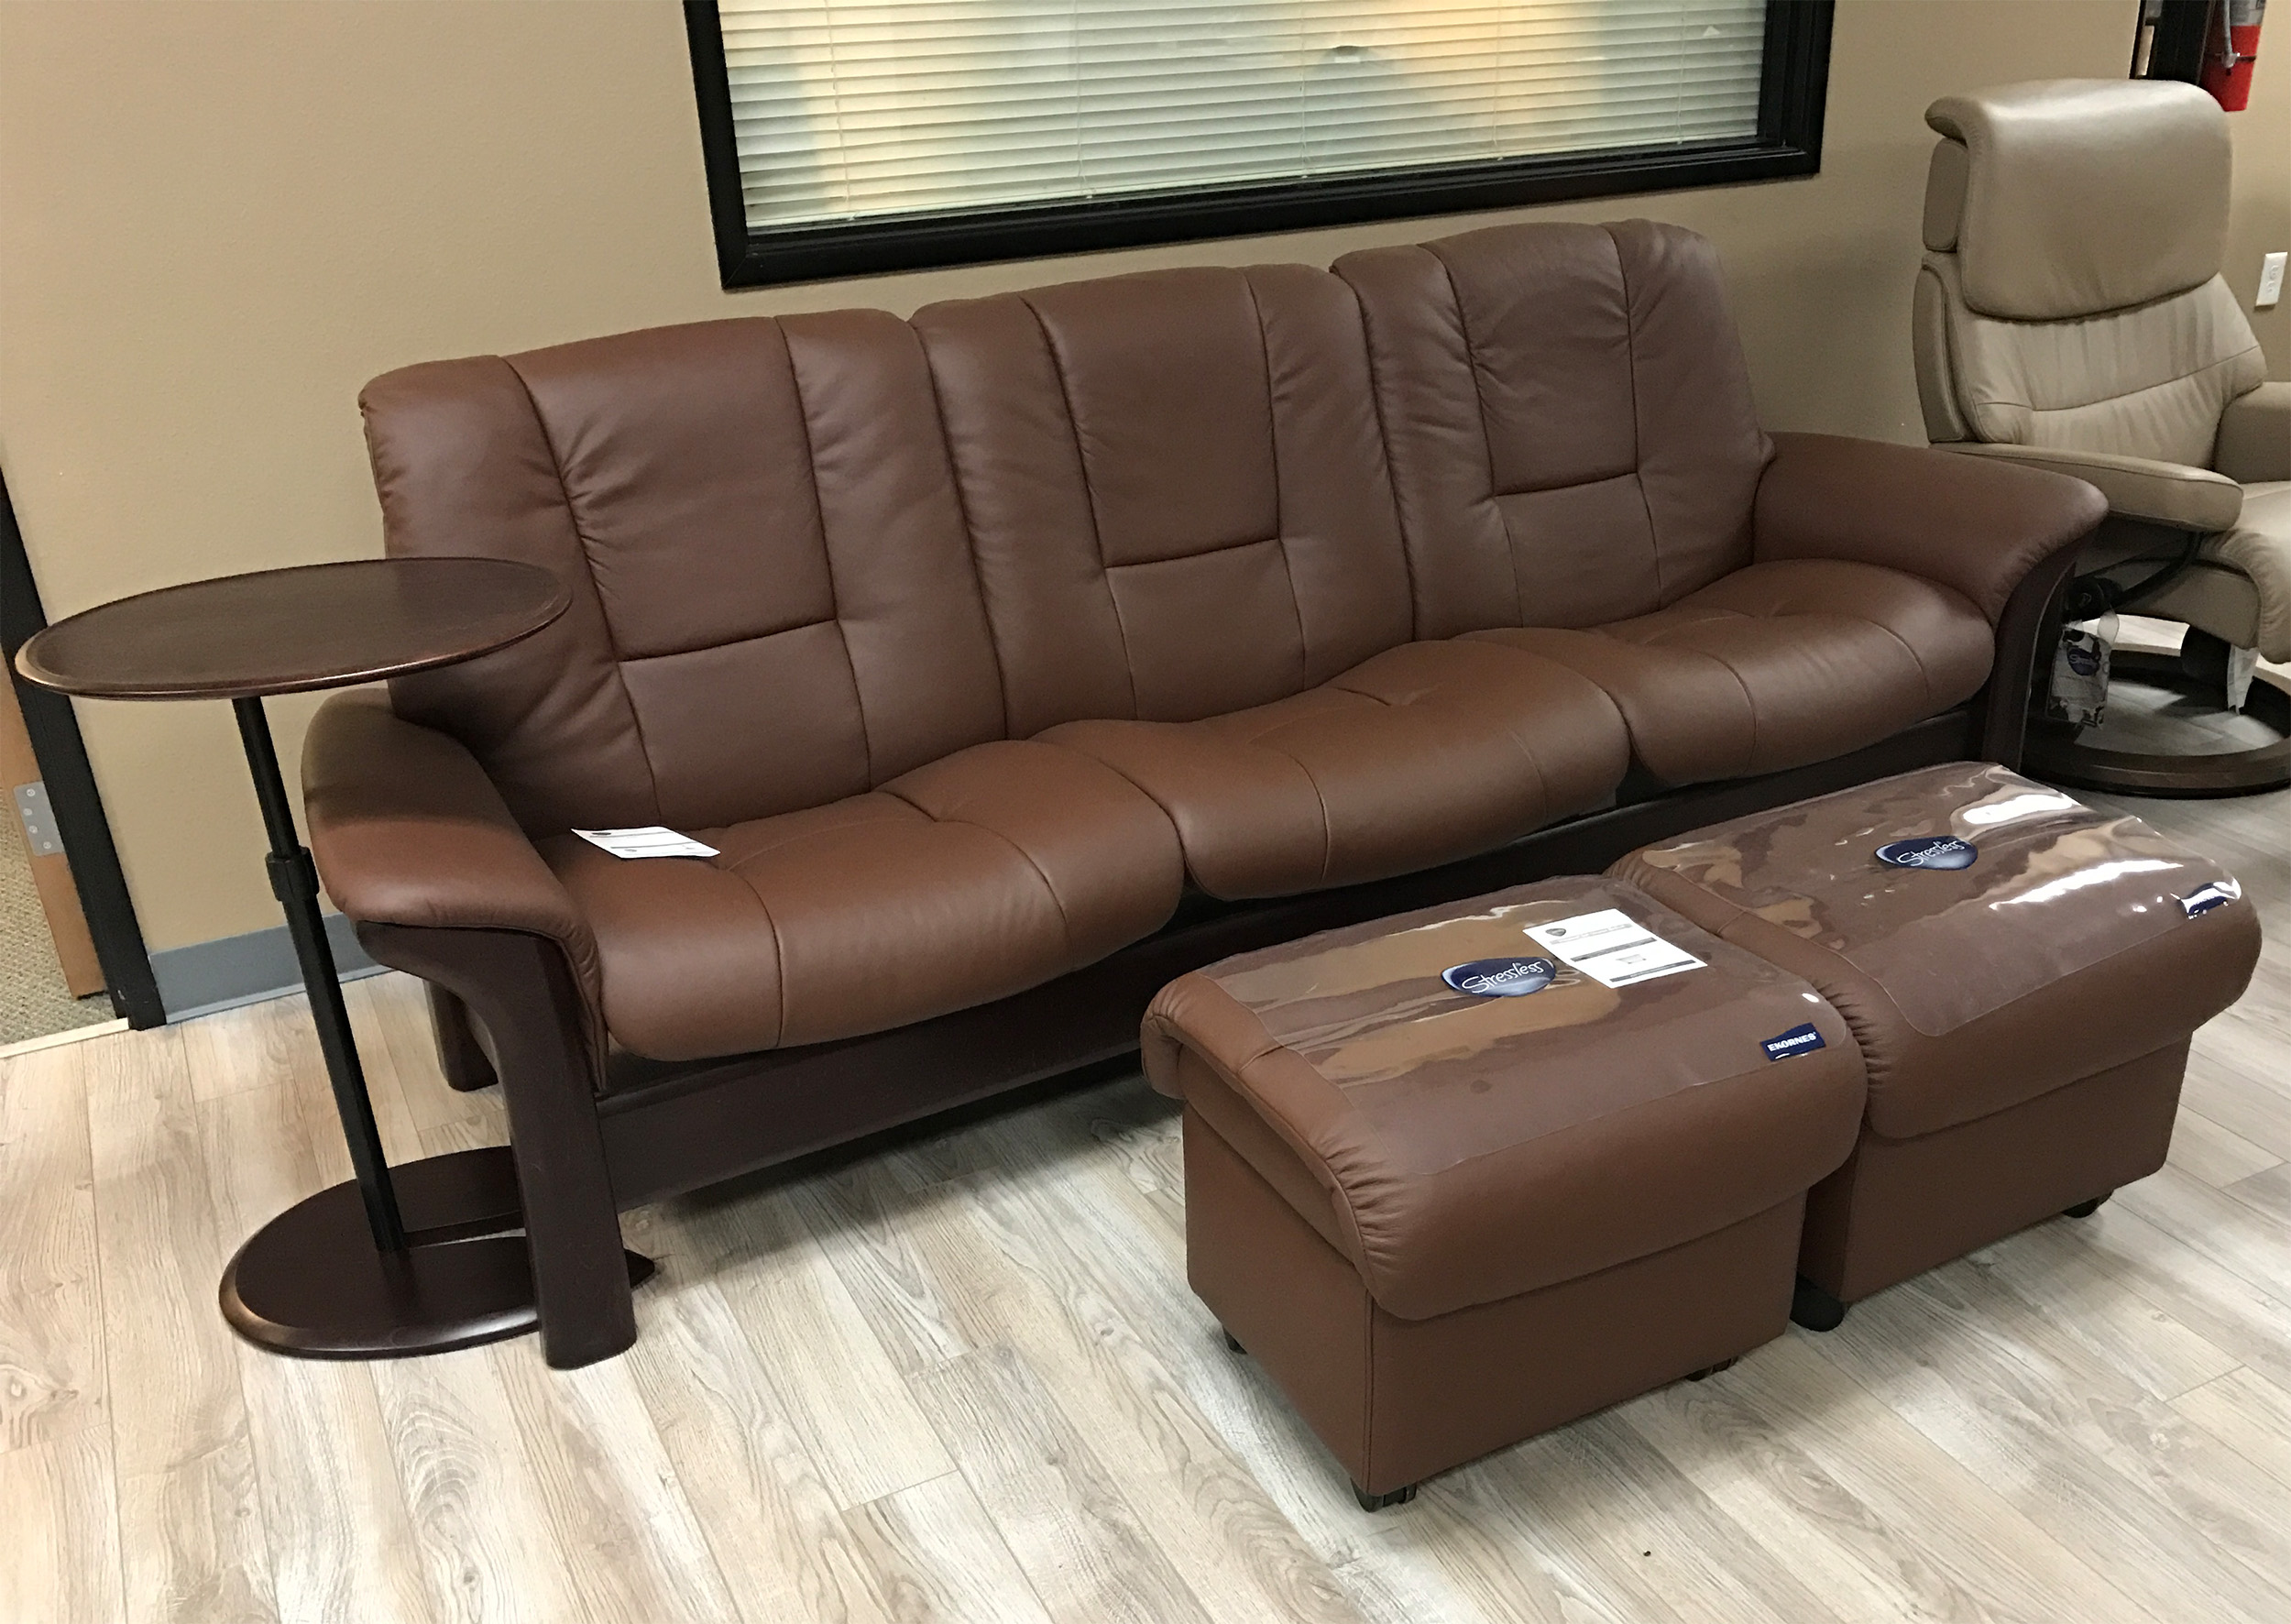 Ekornes Stressless Medium Soft Ottoman, Large Ottomans and ...